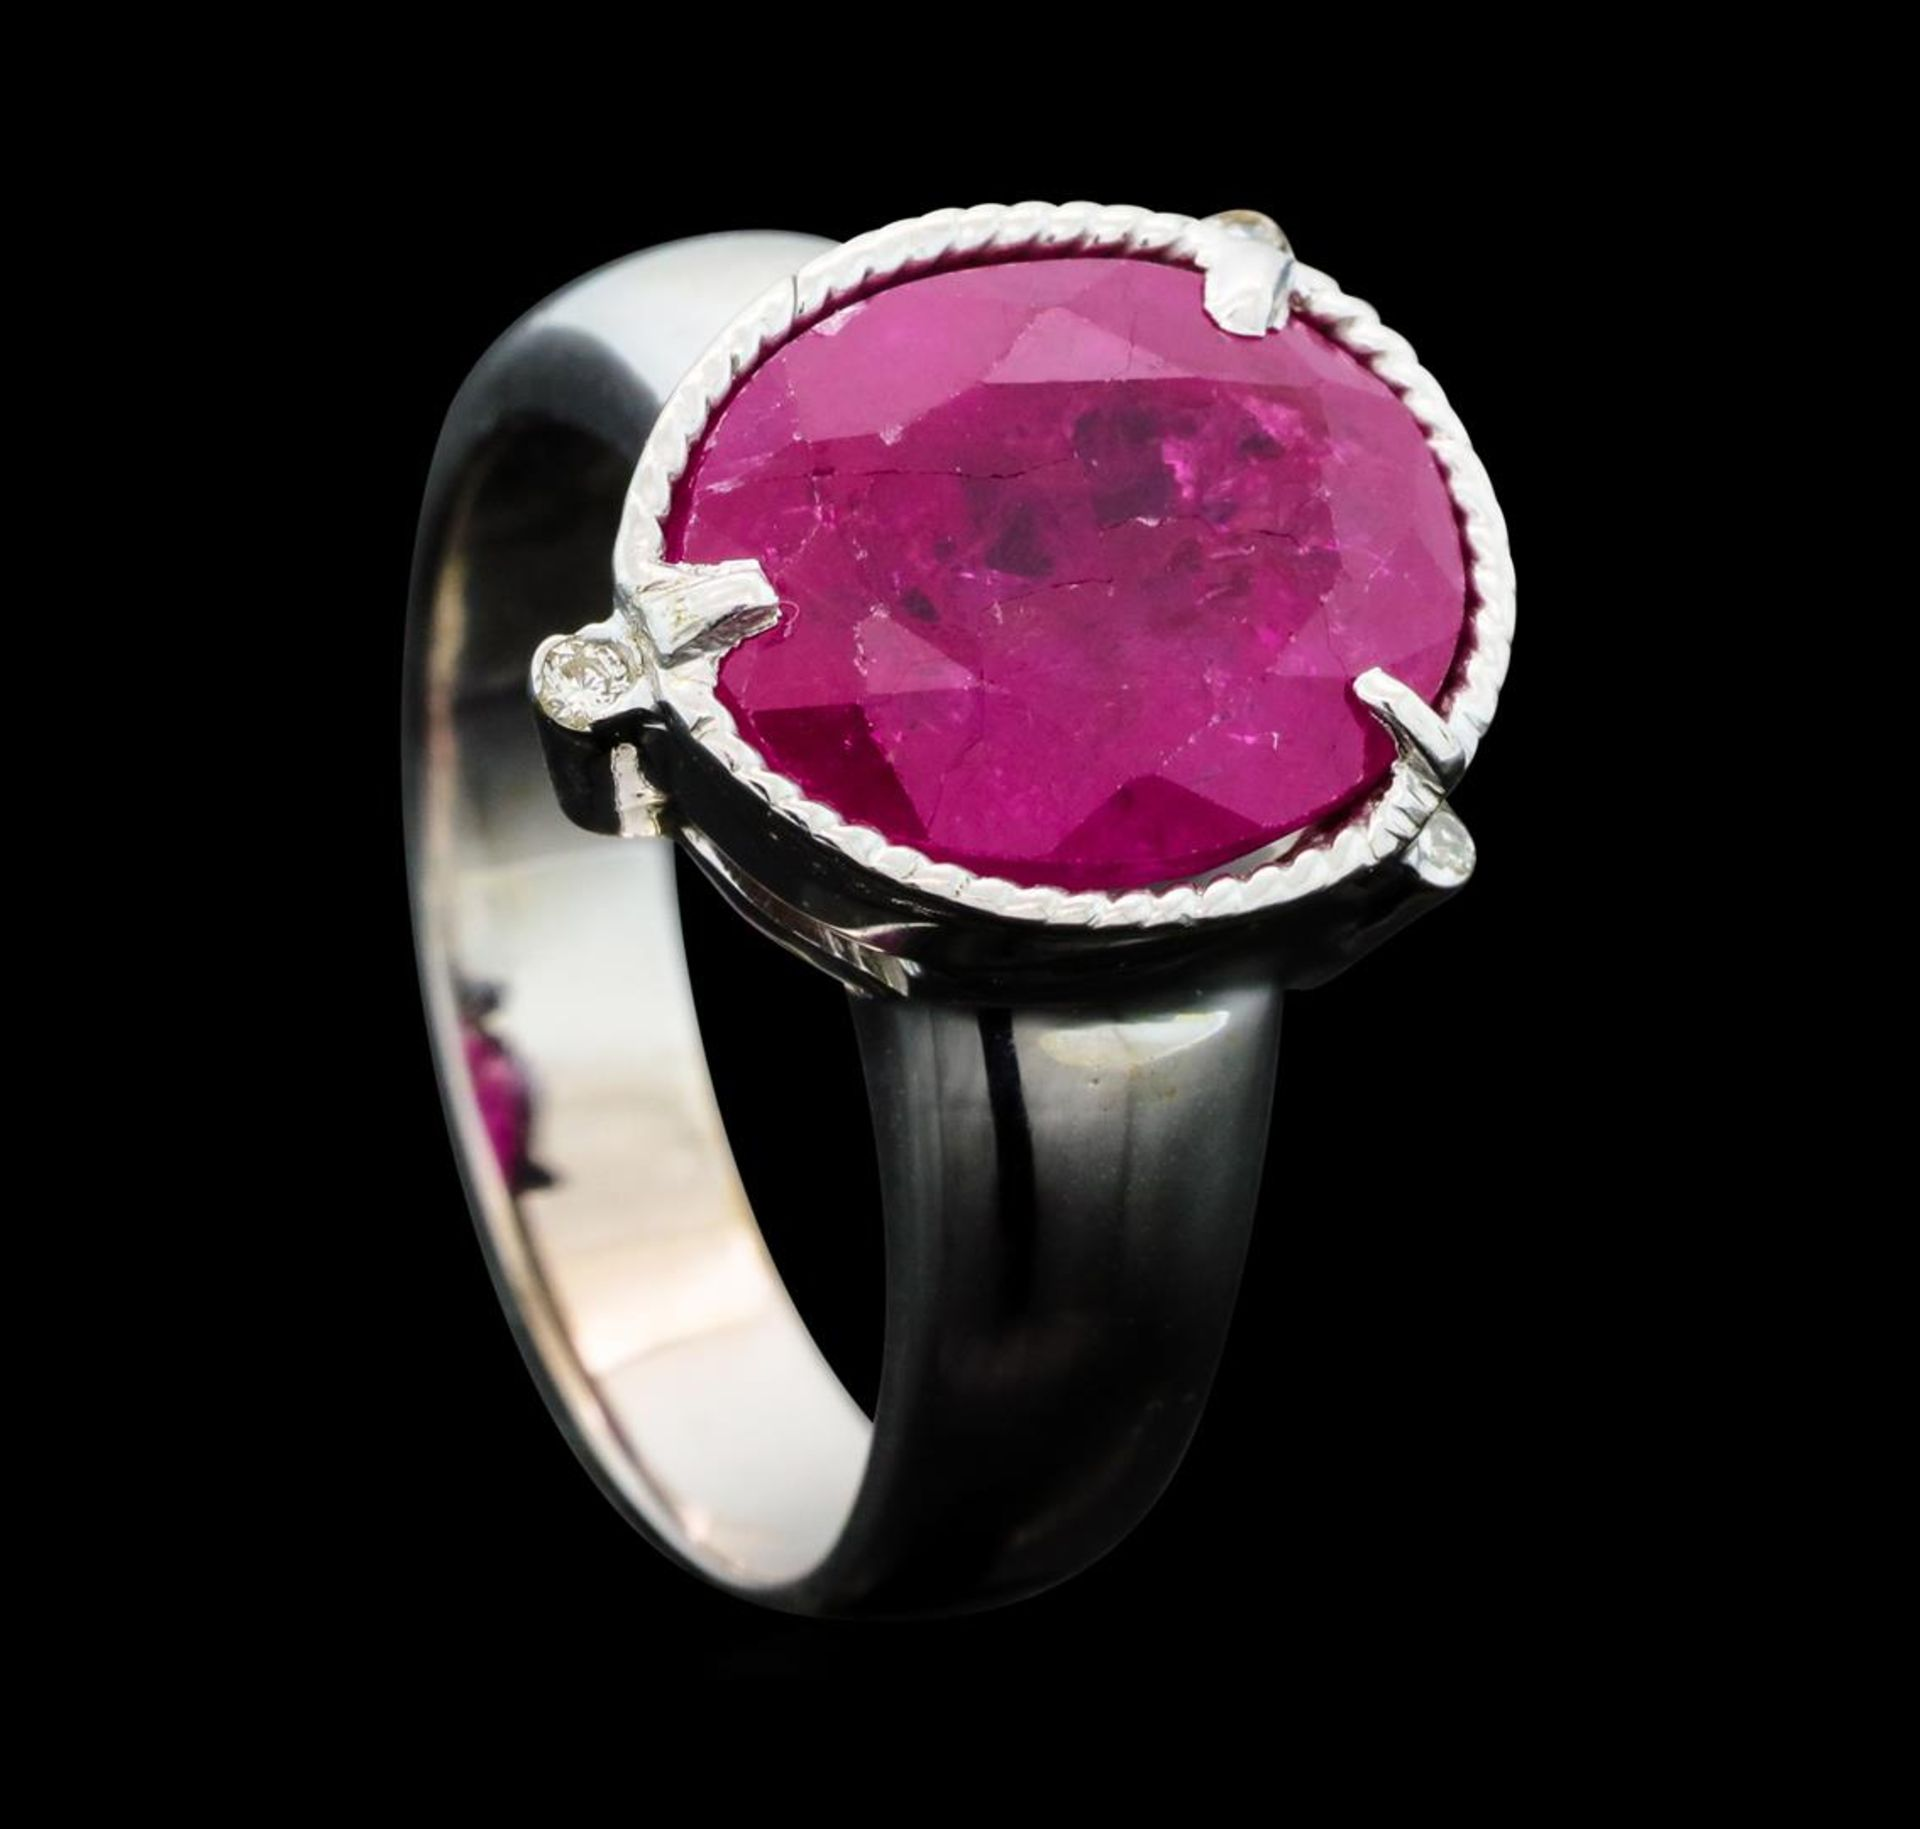 5.85 ct Ruby And Diamond Ring - 14KT Yellow Gold with Rhodium Plating - Image 4 of 5